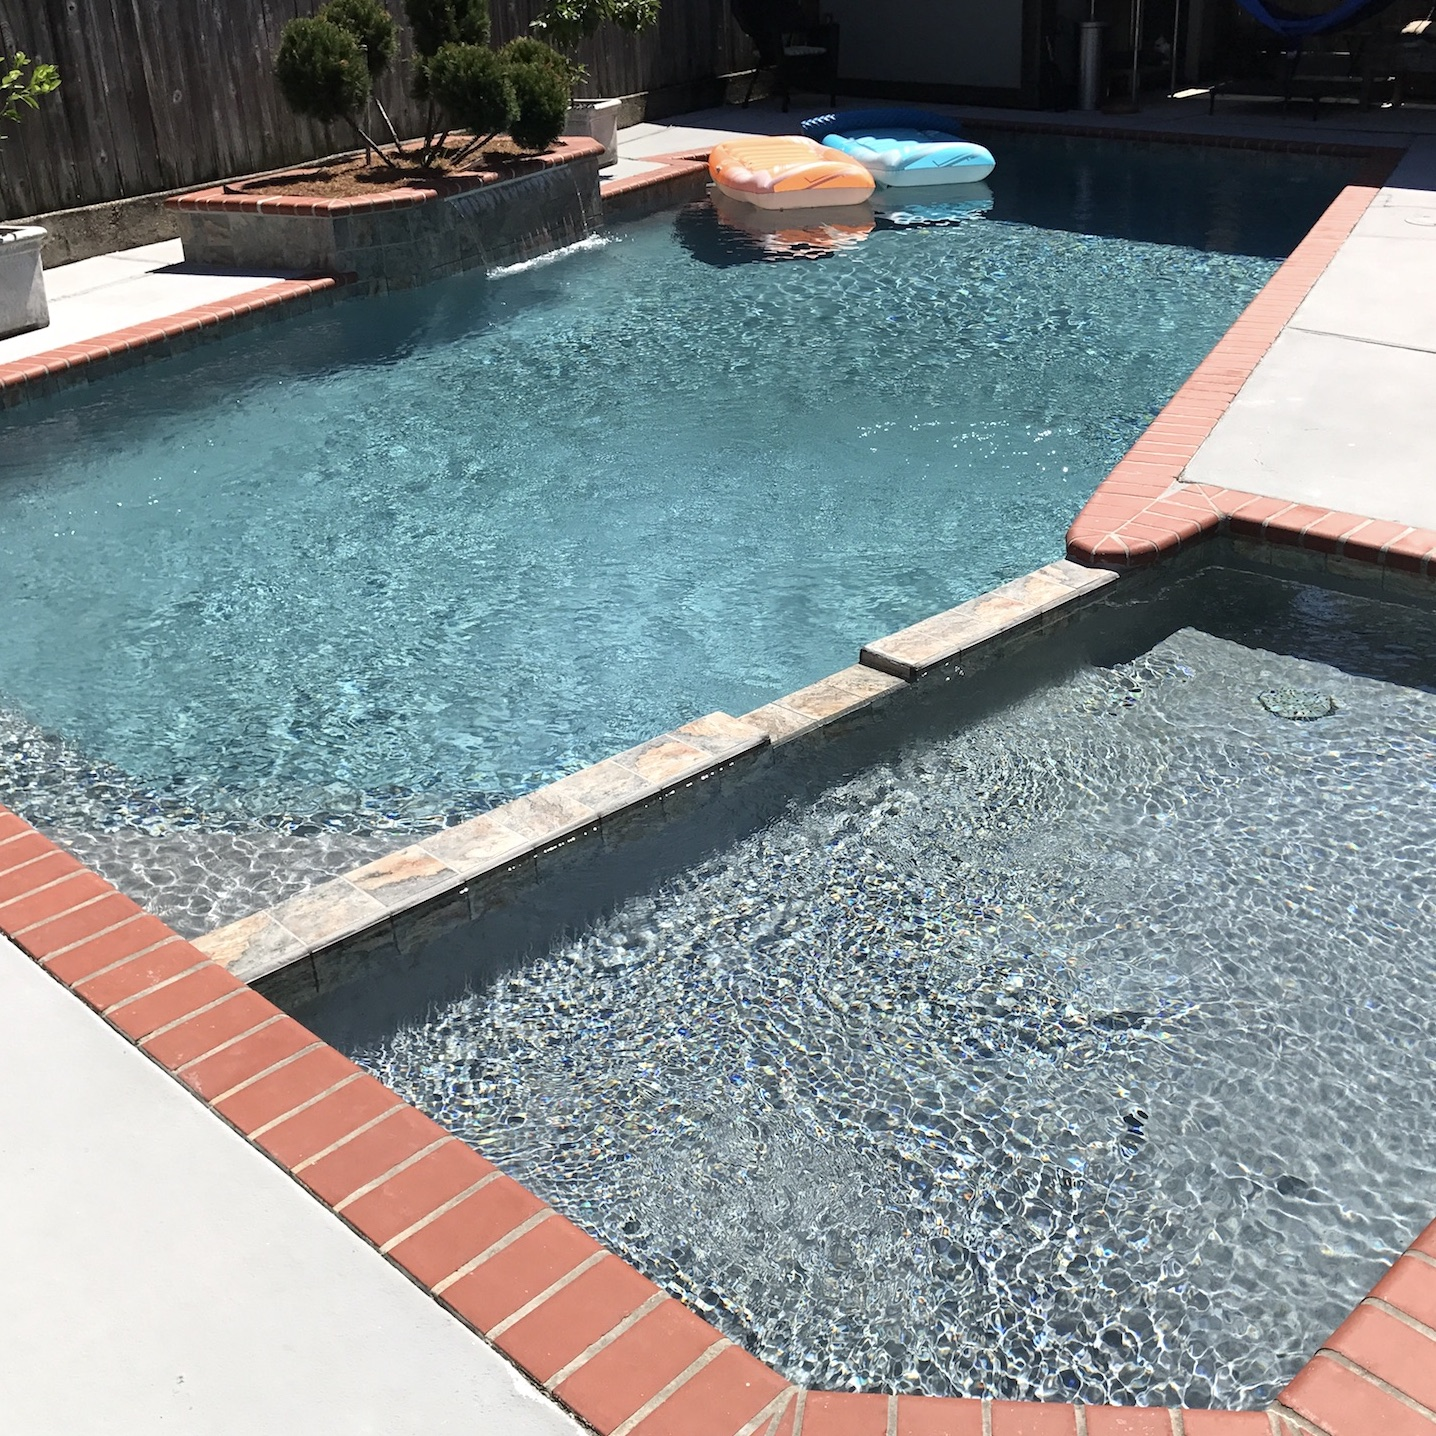 Pool plaster project - New Orleans pool construction and maintenance, in the New Orleans and Metairie area